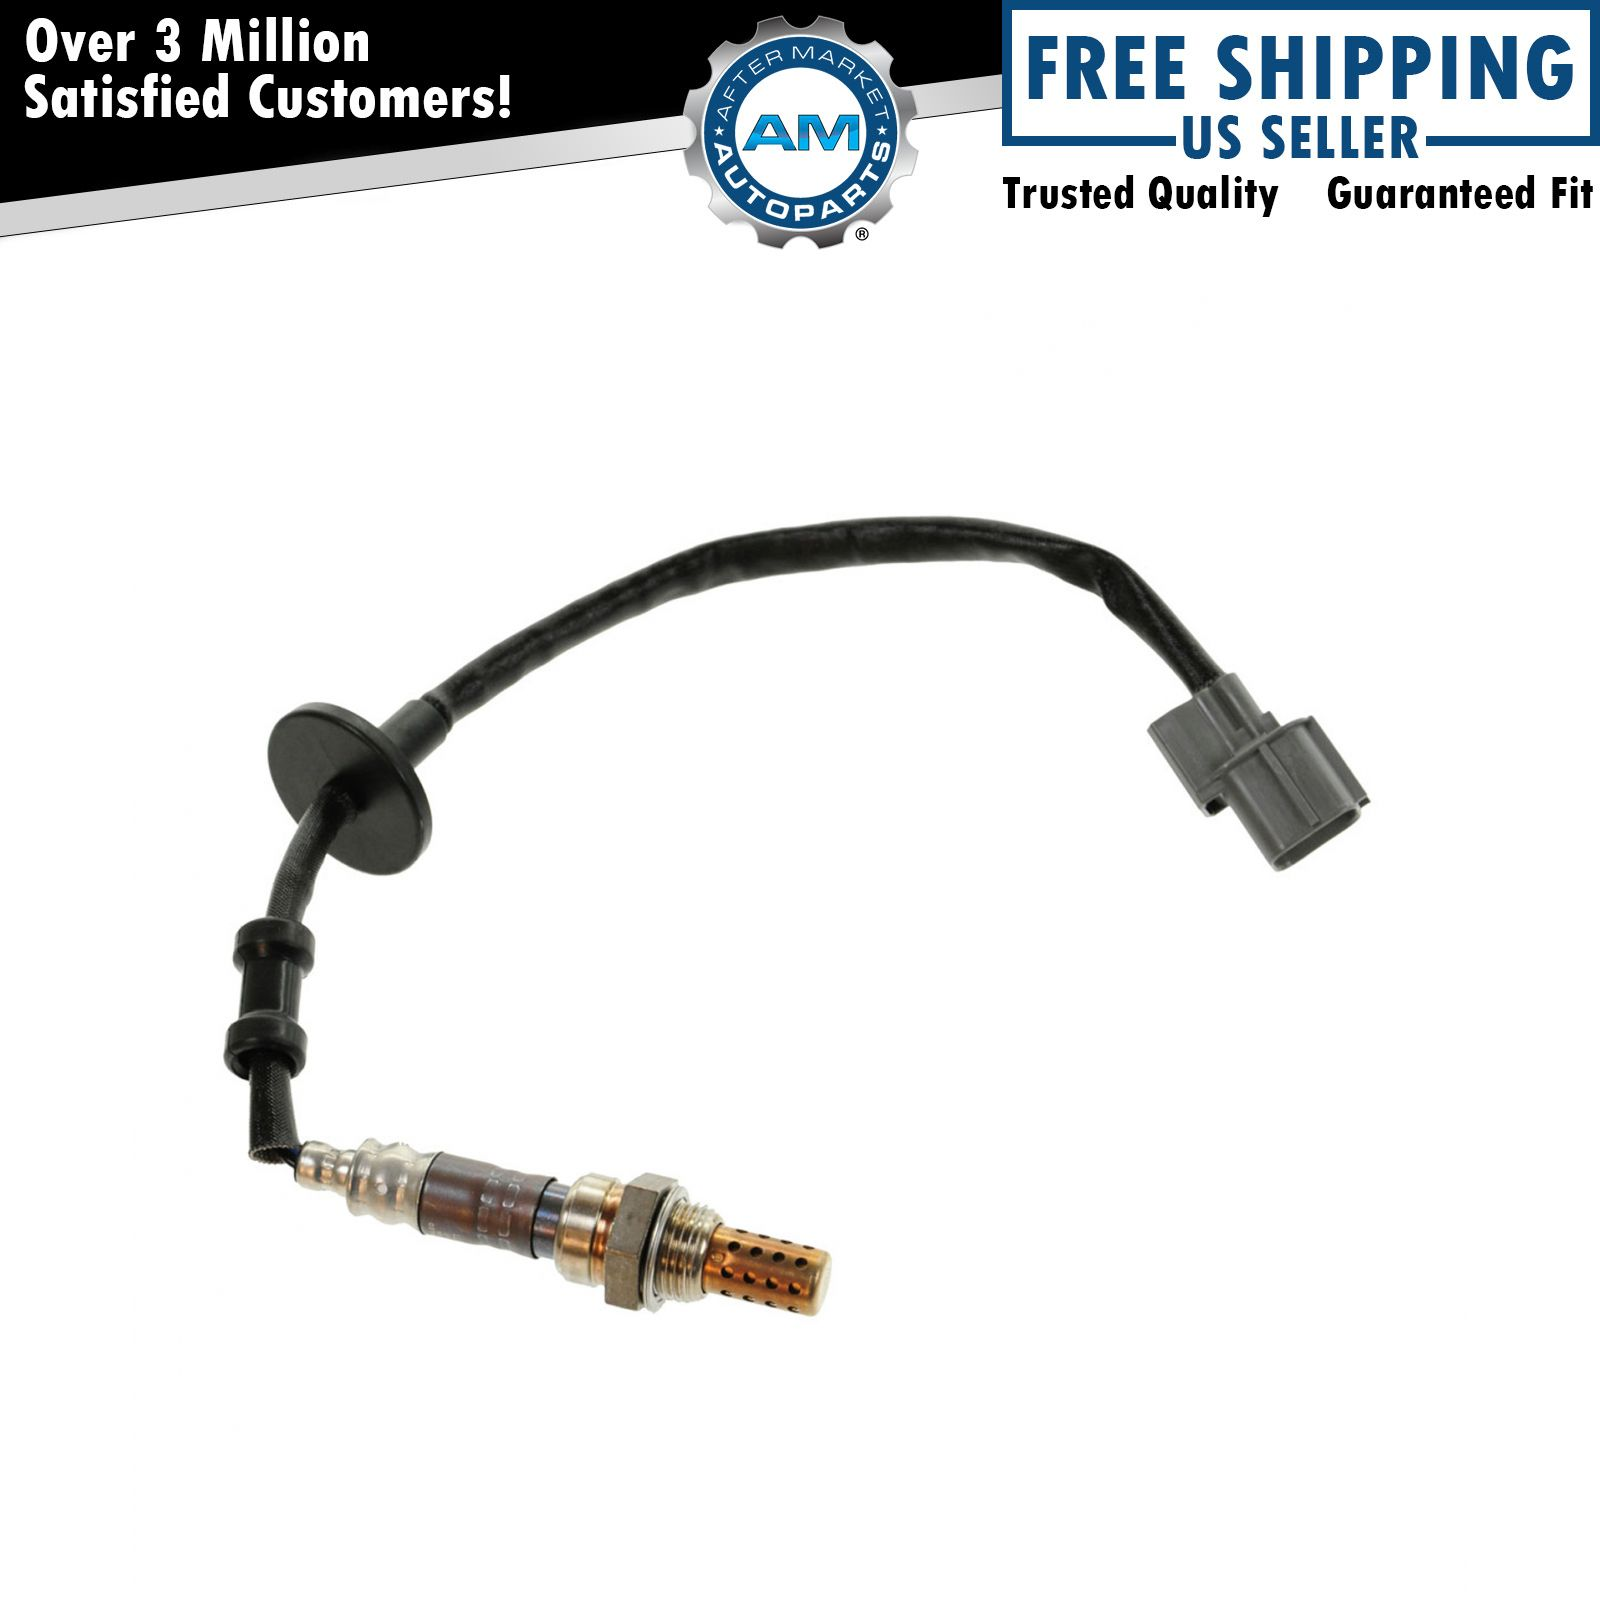 02 O2 Oxygen Sensor Downstream For Acura Integra Honda